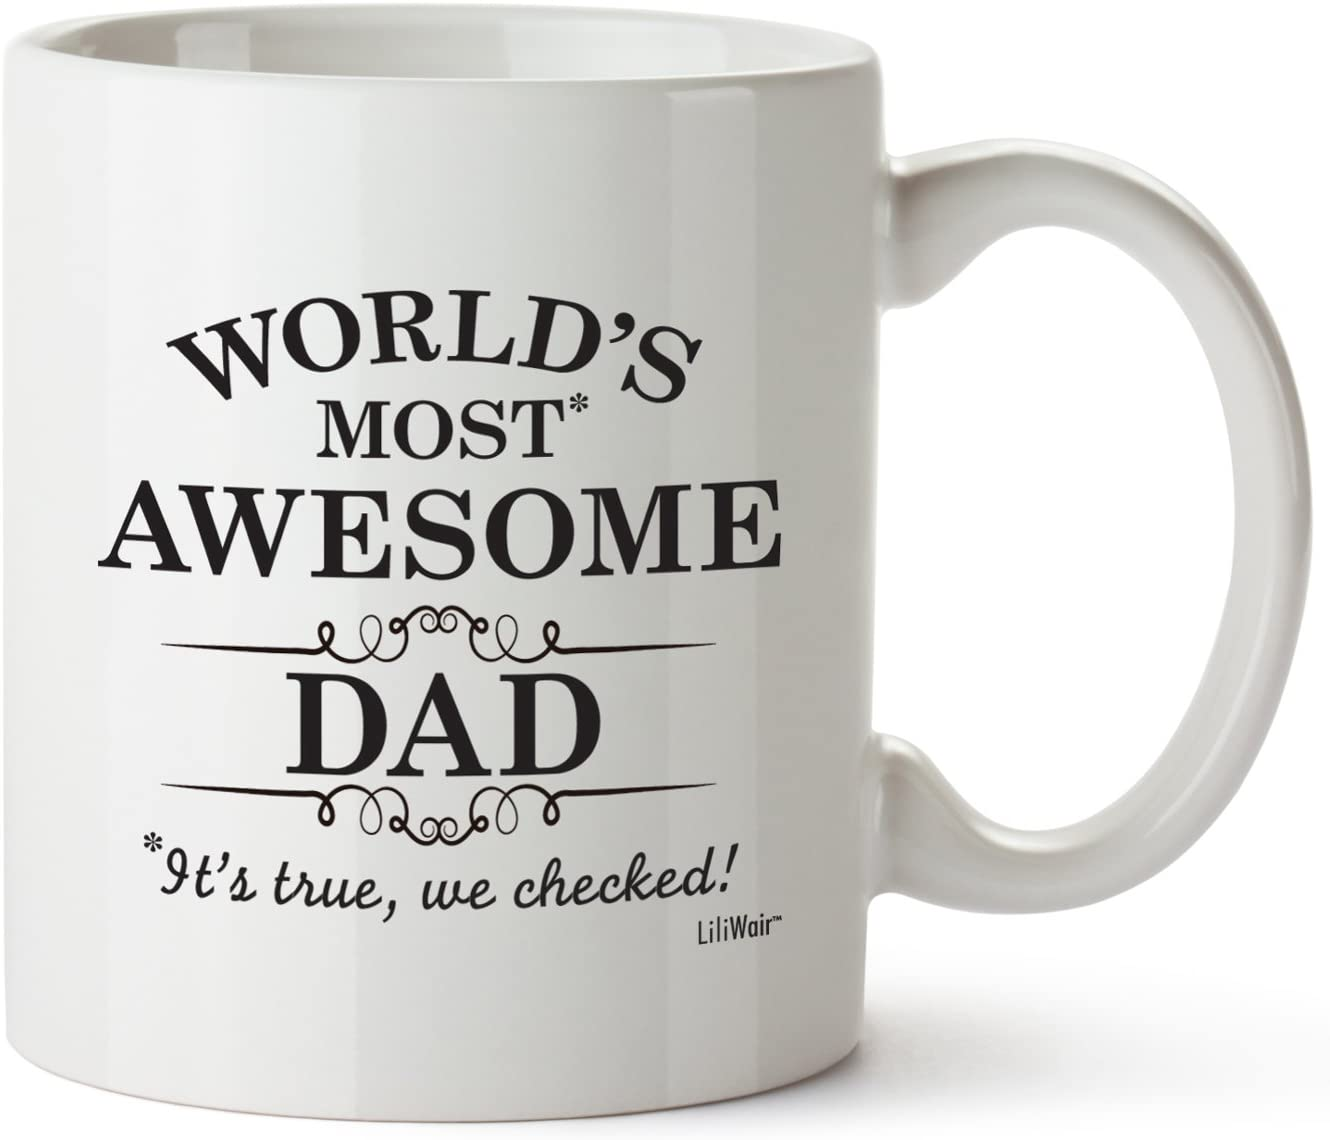 Gift for Him Fathers Day Gift Worlds Best Dad Gift for Dad Gift for Husband Custom Birthday Gift for Dad Funny Coffee Mug Dad Mug